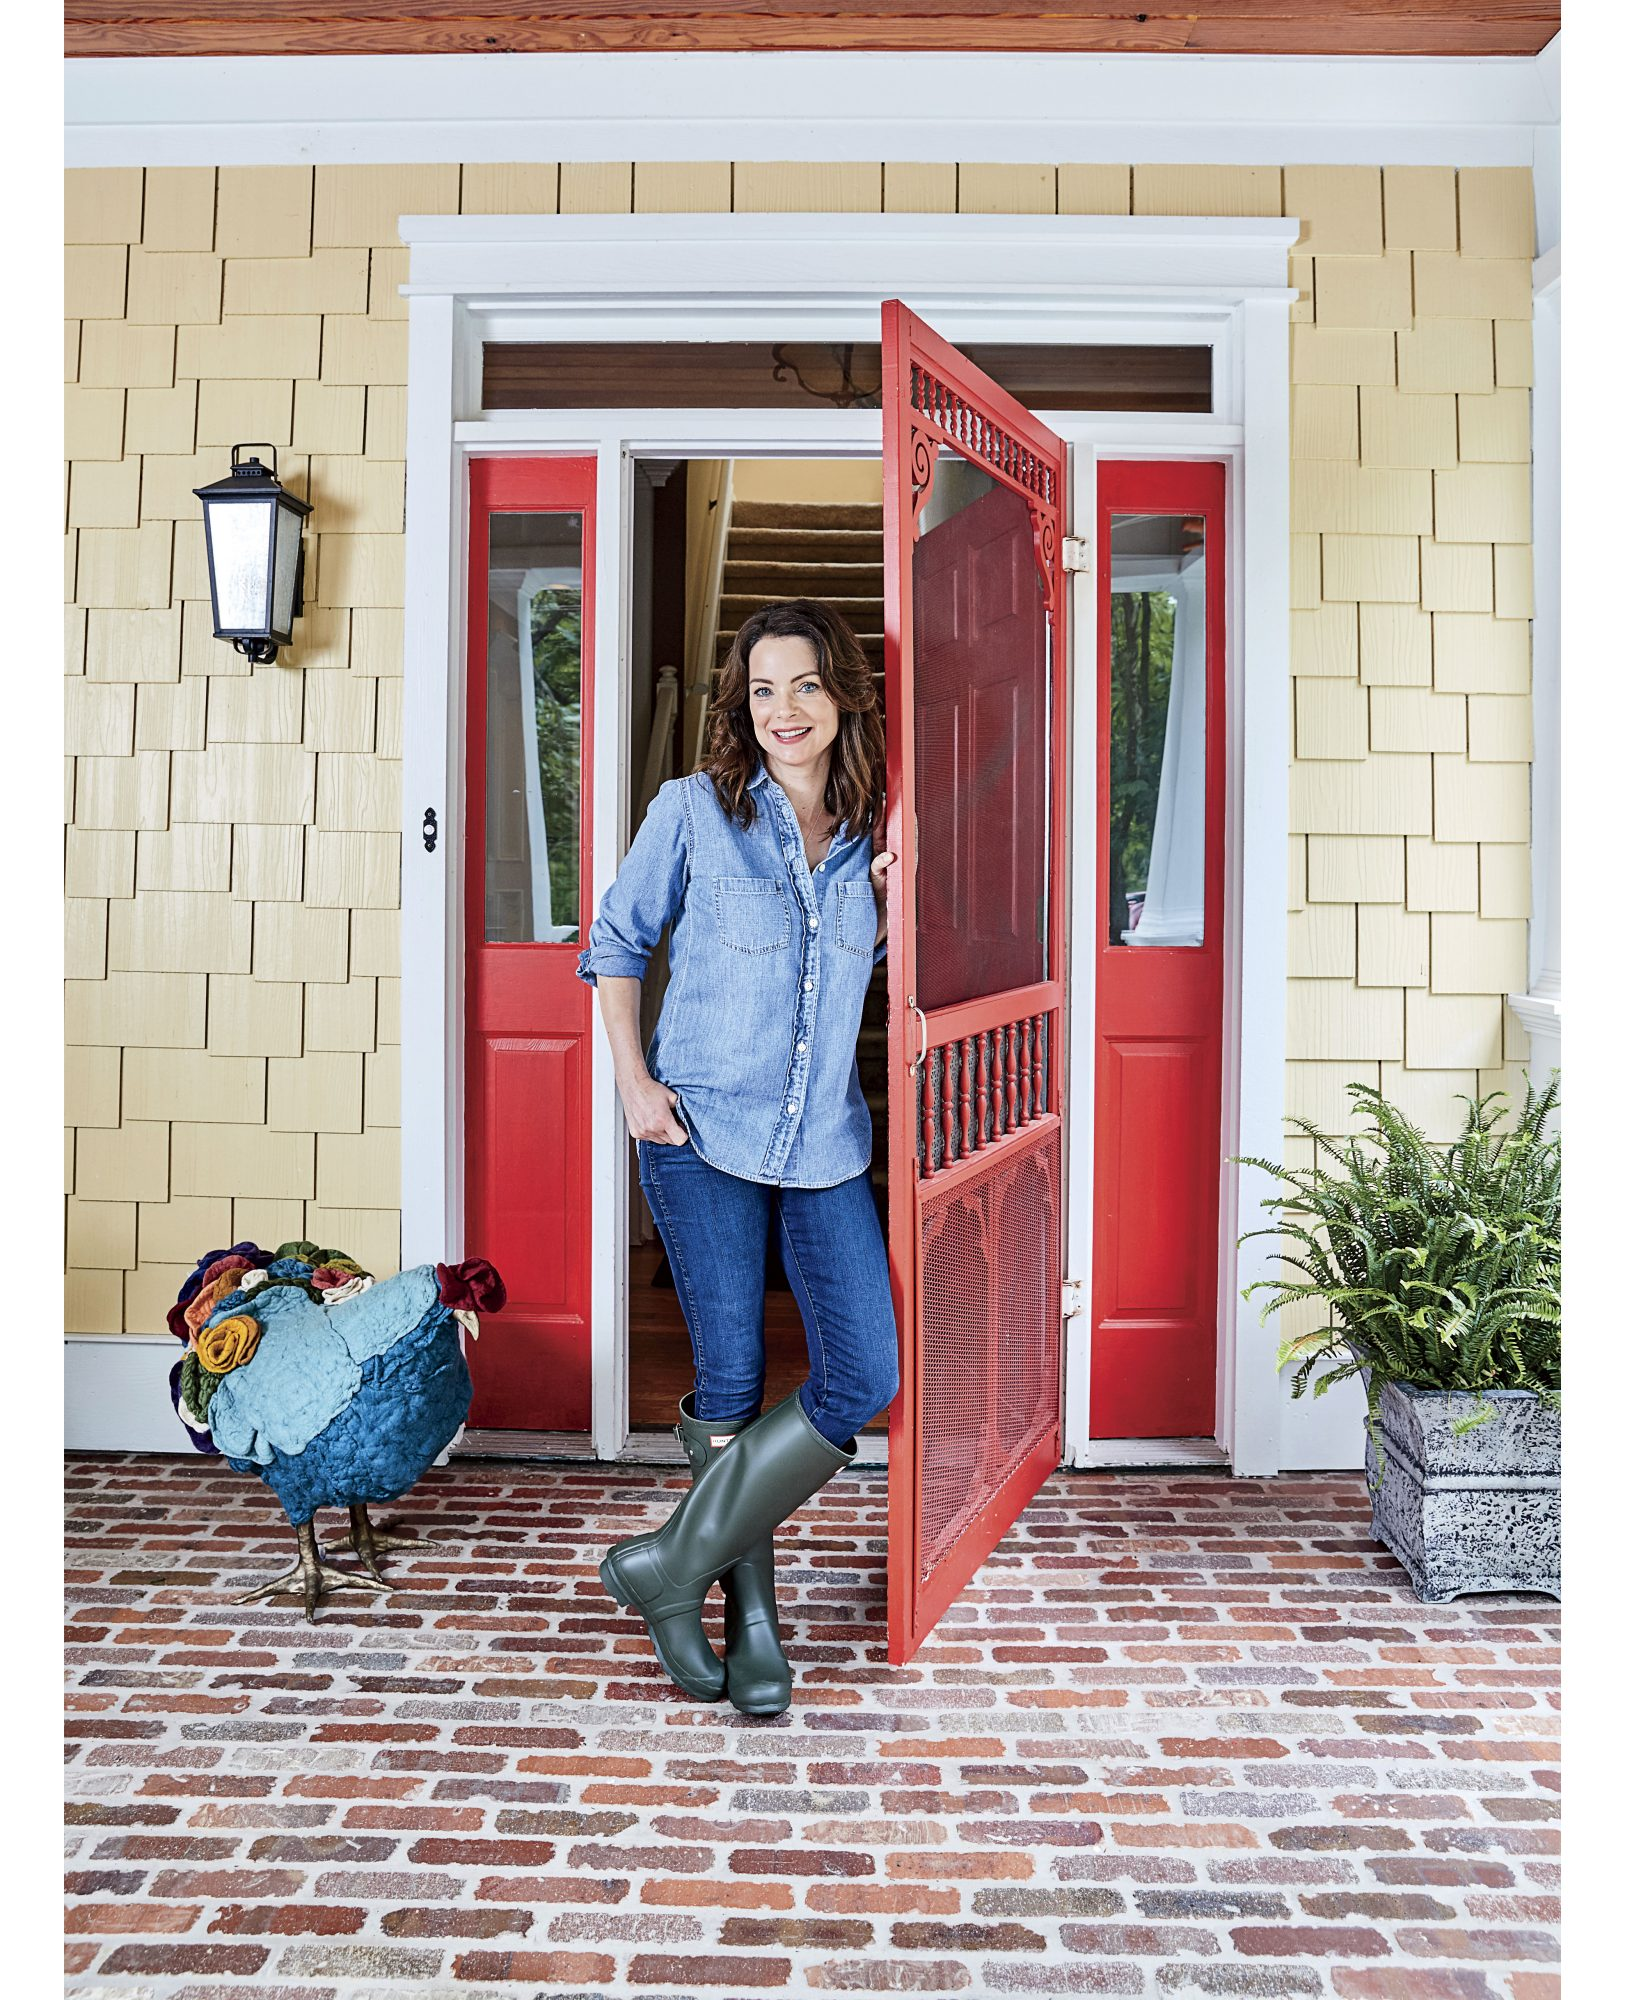 Kimberly Williams-Paisley on Front Porch